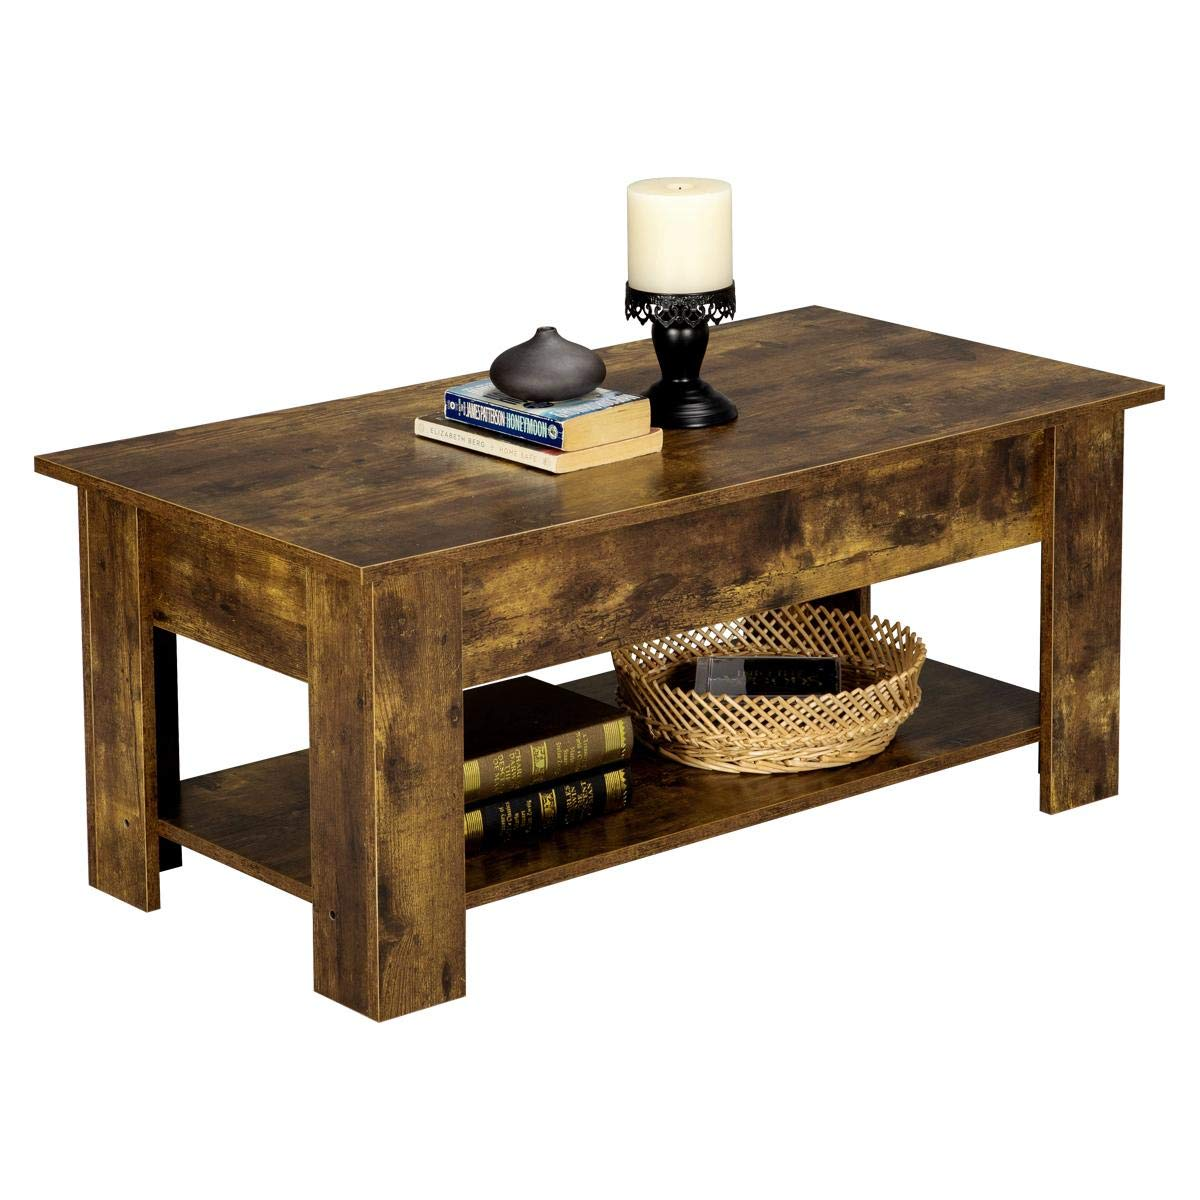 Yaheetech Rustic Lift Top Coffee Table w/Hidden Compartment & Storage Space - Lift Tabletop for Living Room Furniture, Rustic Brown